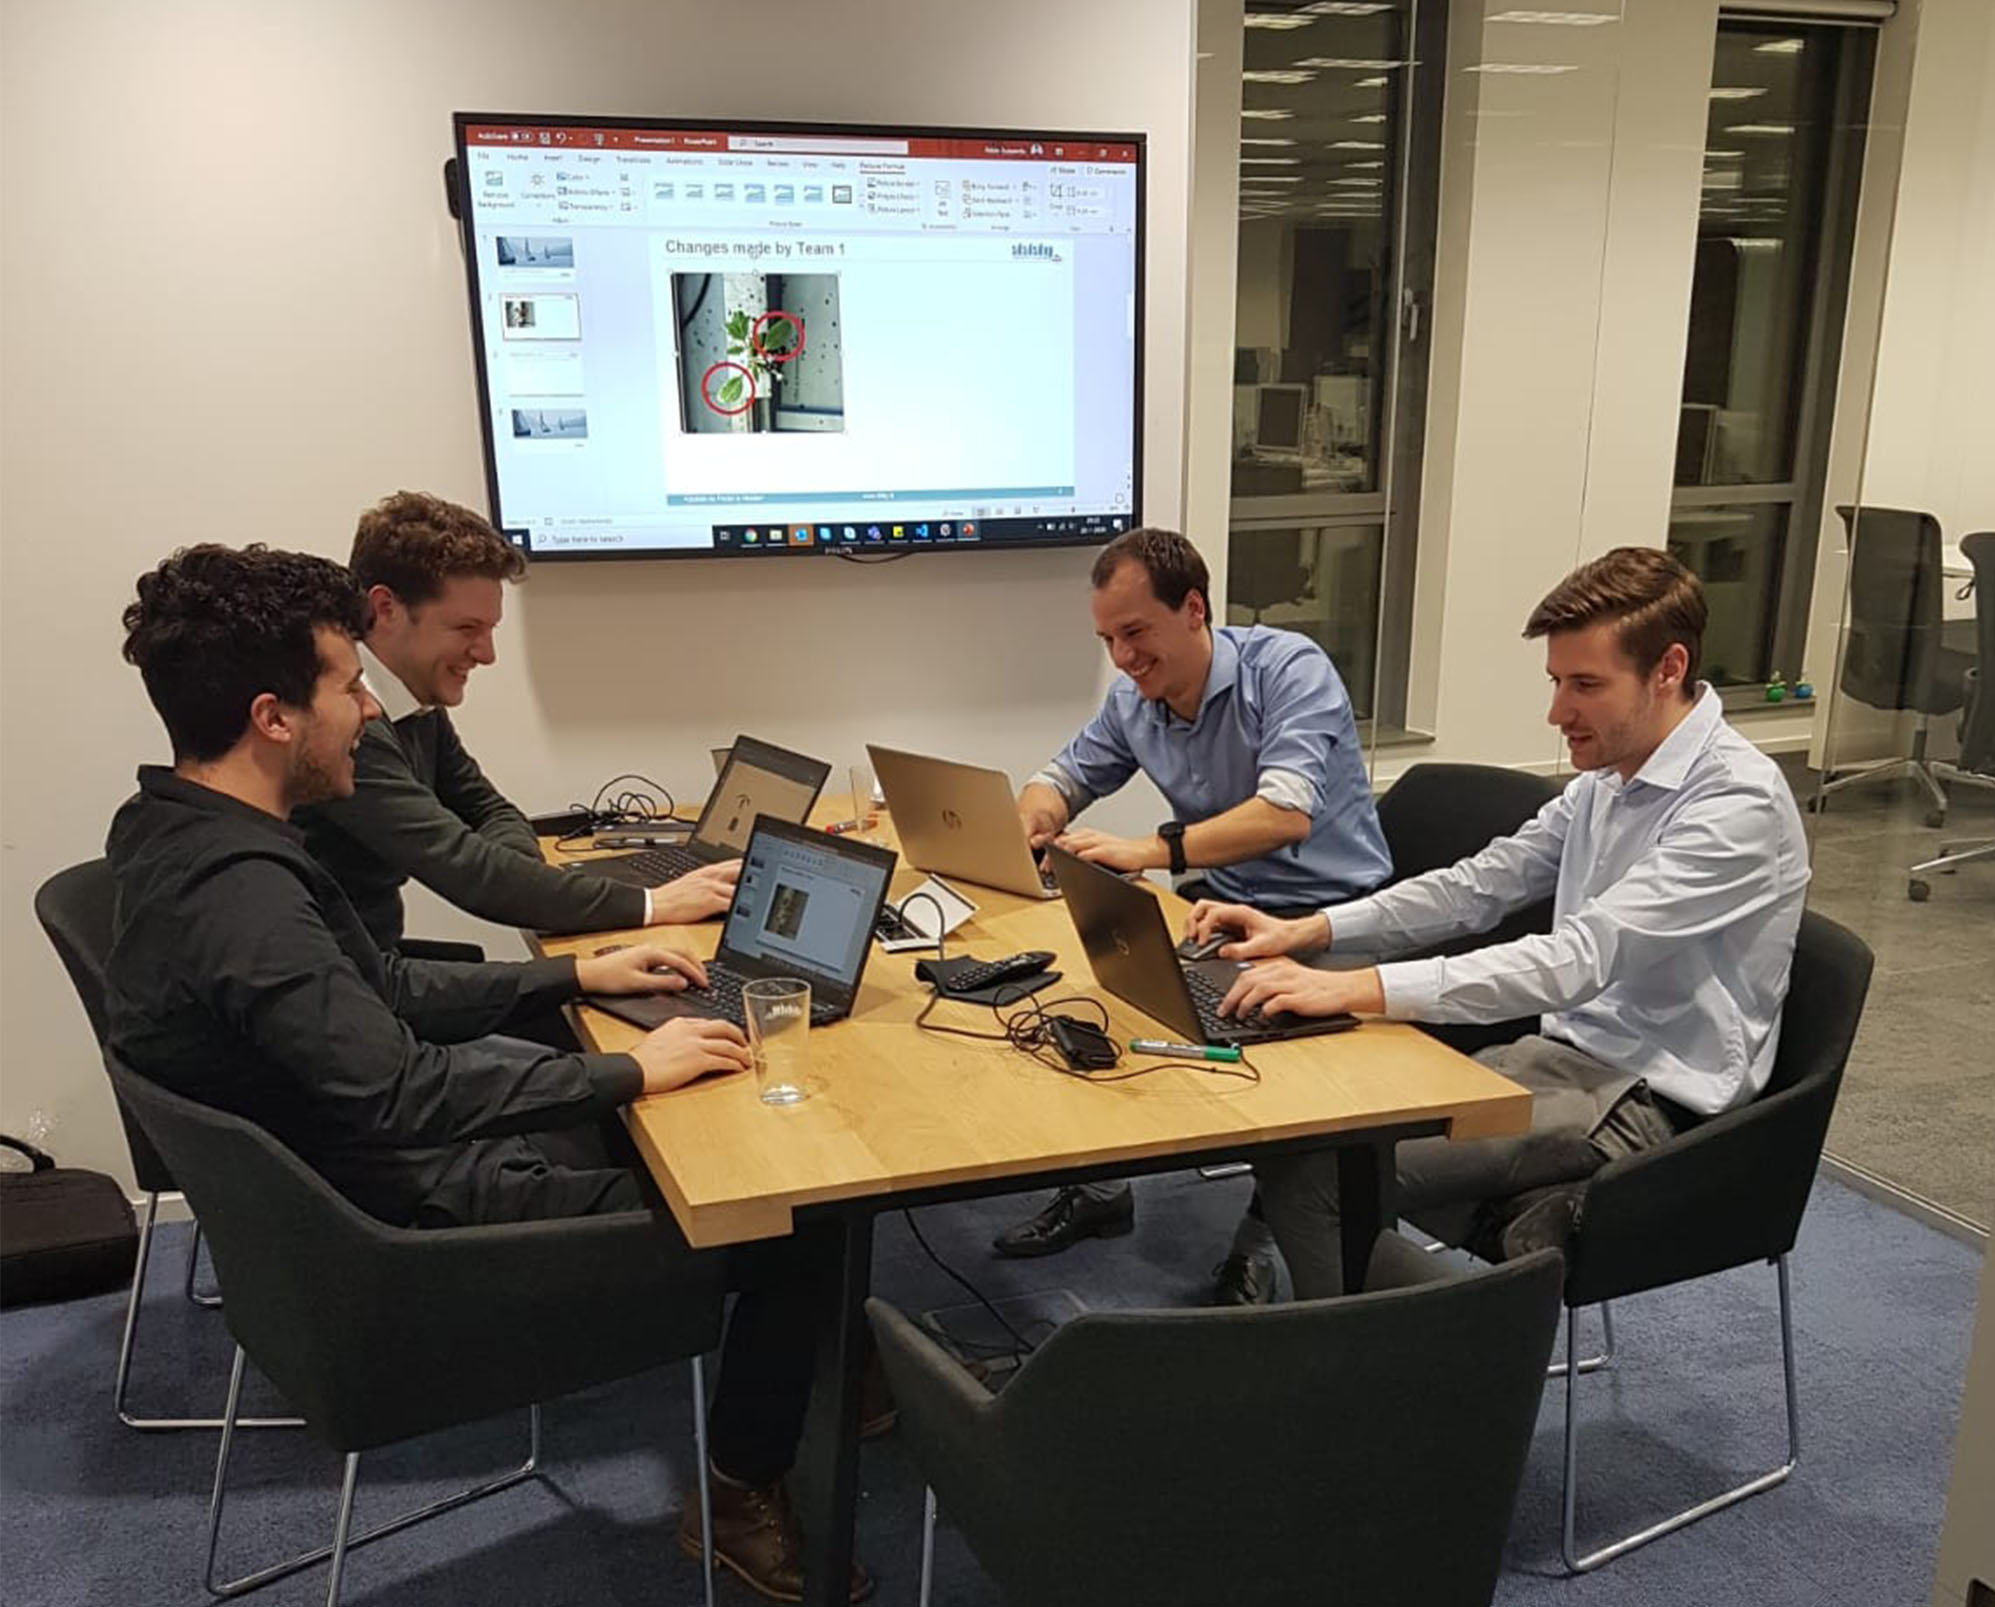 Hackathon on improving seedling classification performance through advanced feature engineering